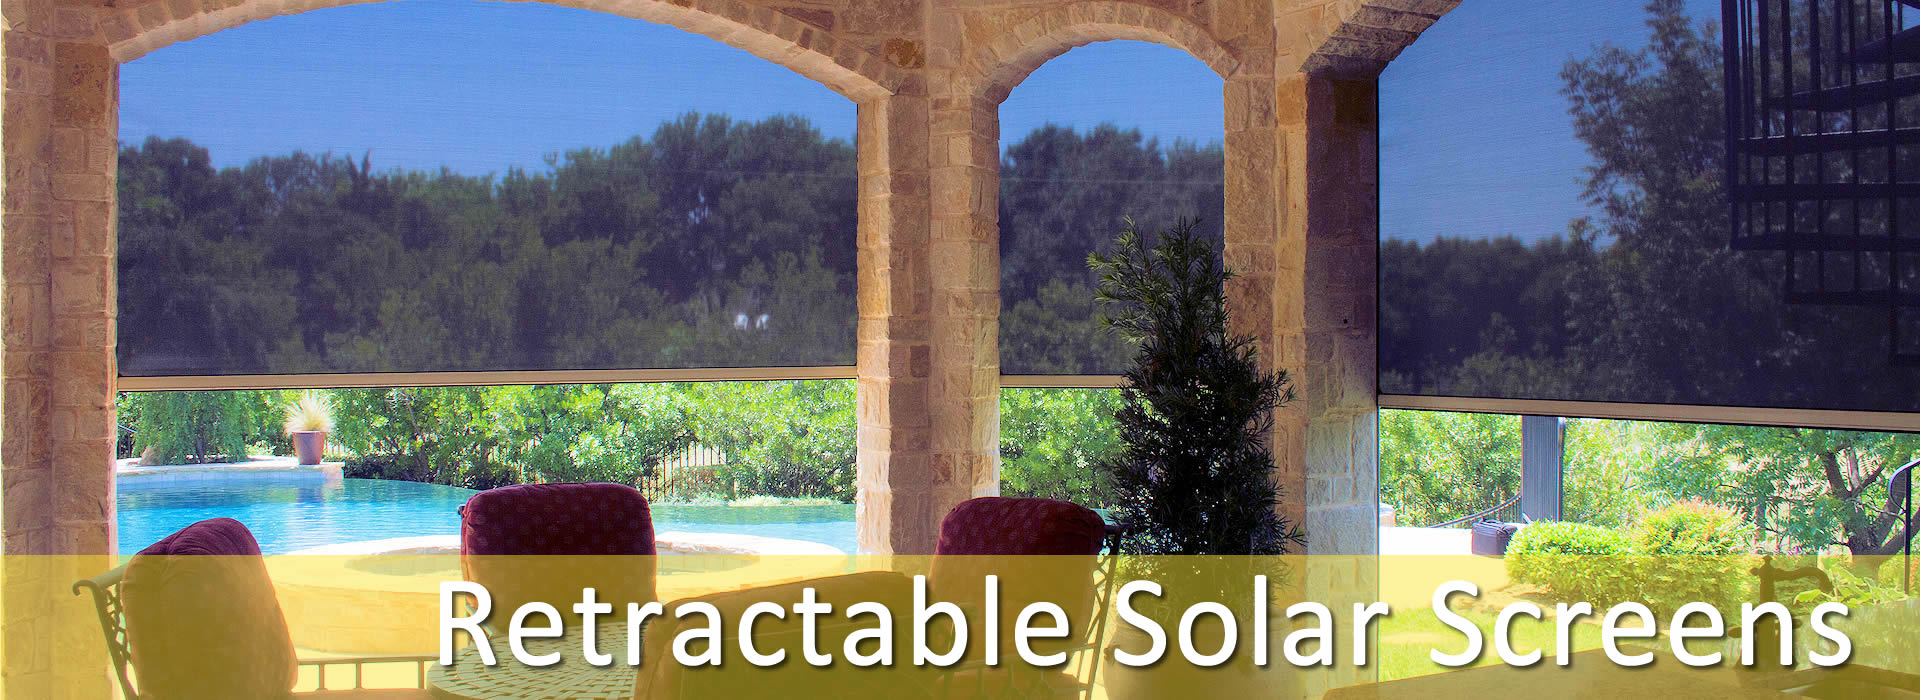 Retractable Solar Screens